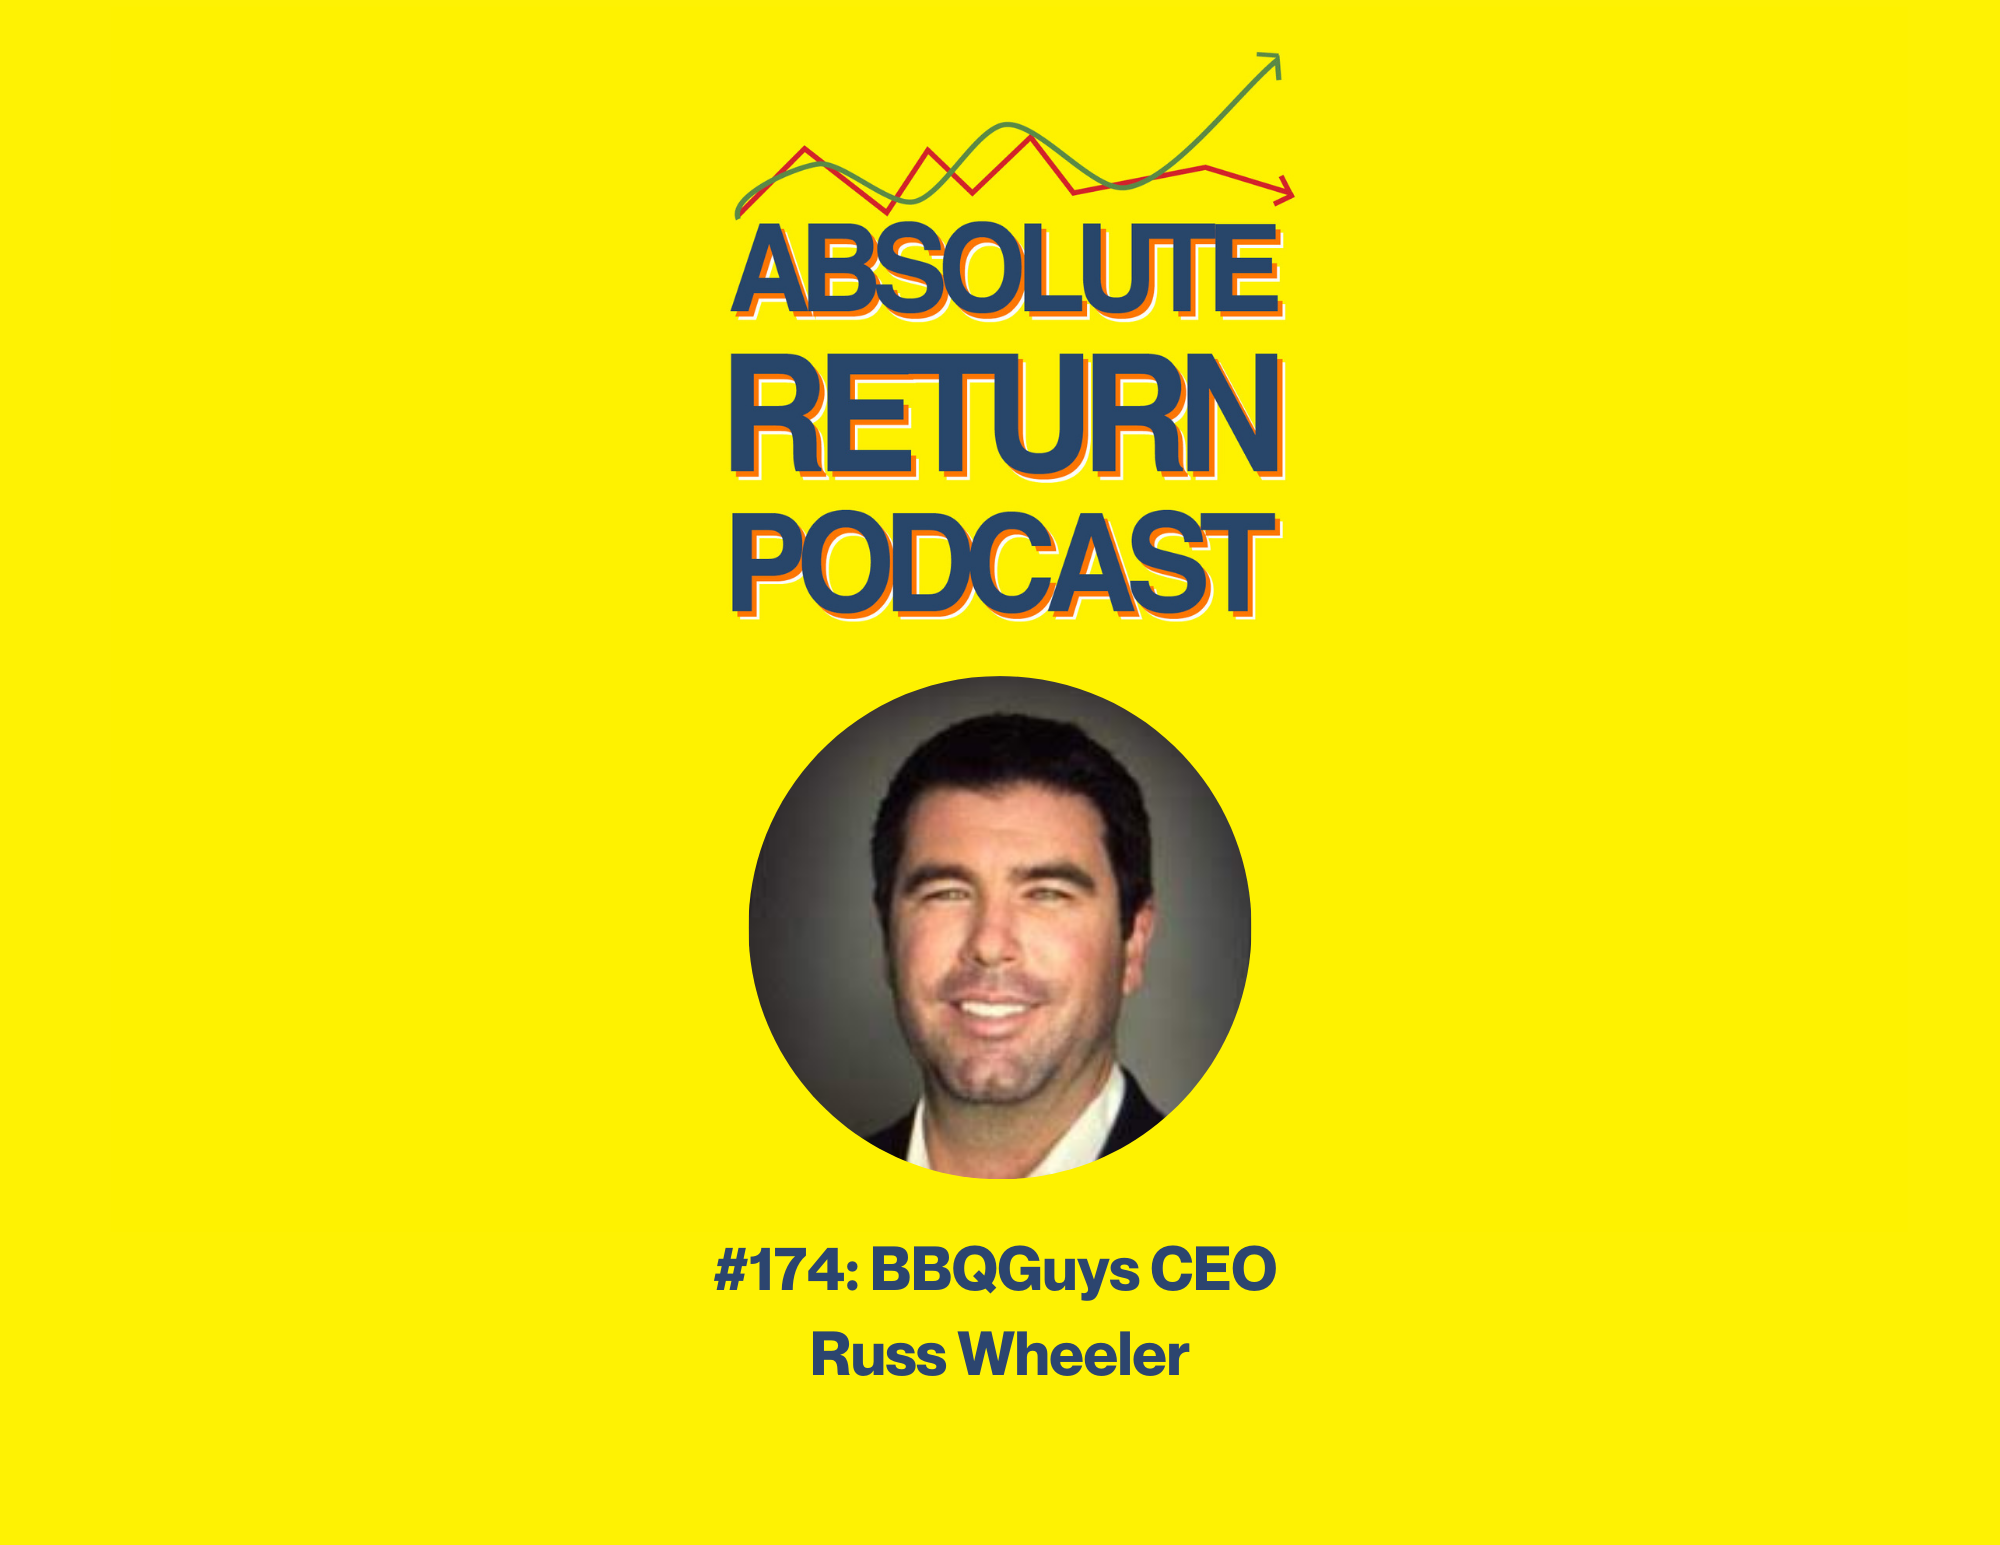 Absolute Return Podcast #174: Leadership Chat: BBQGuys CEO Russ Wheeler